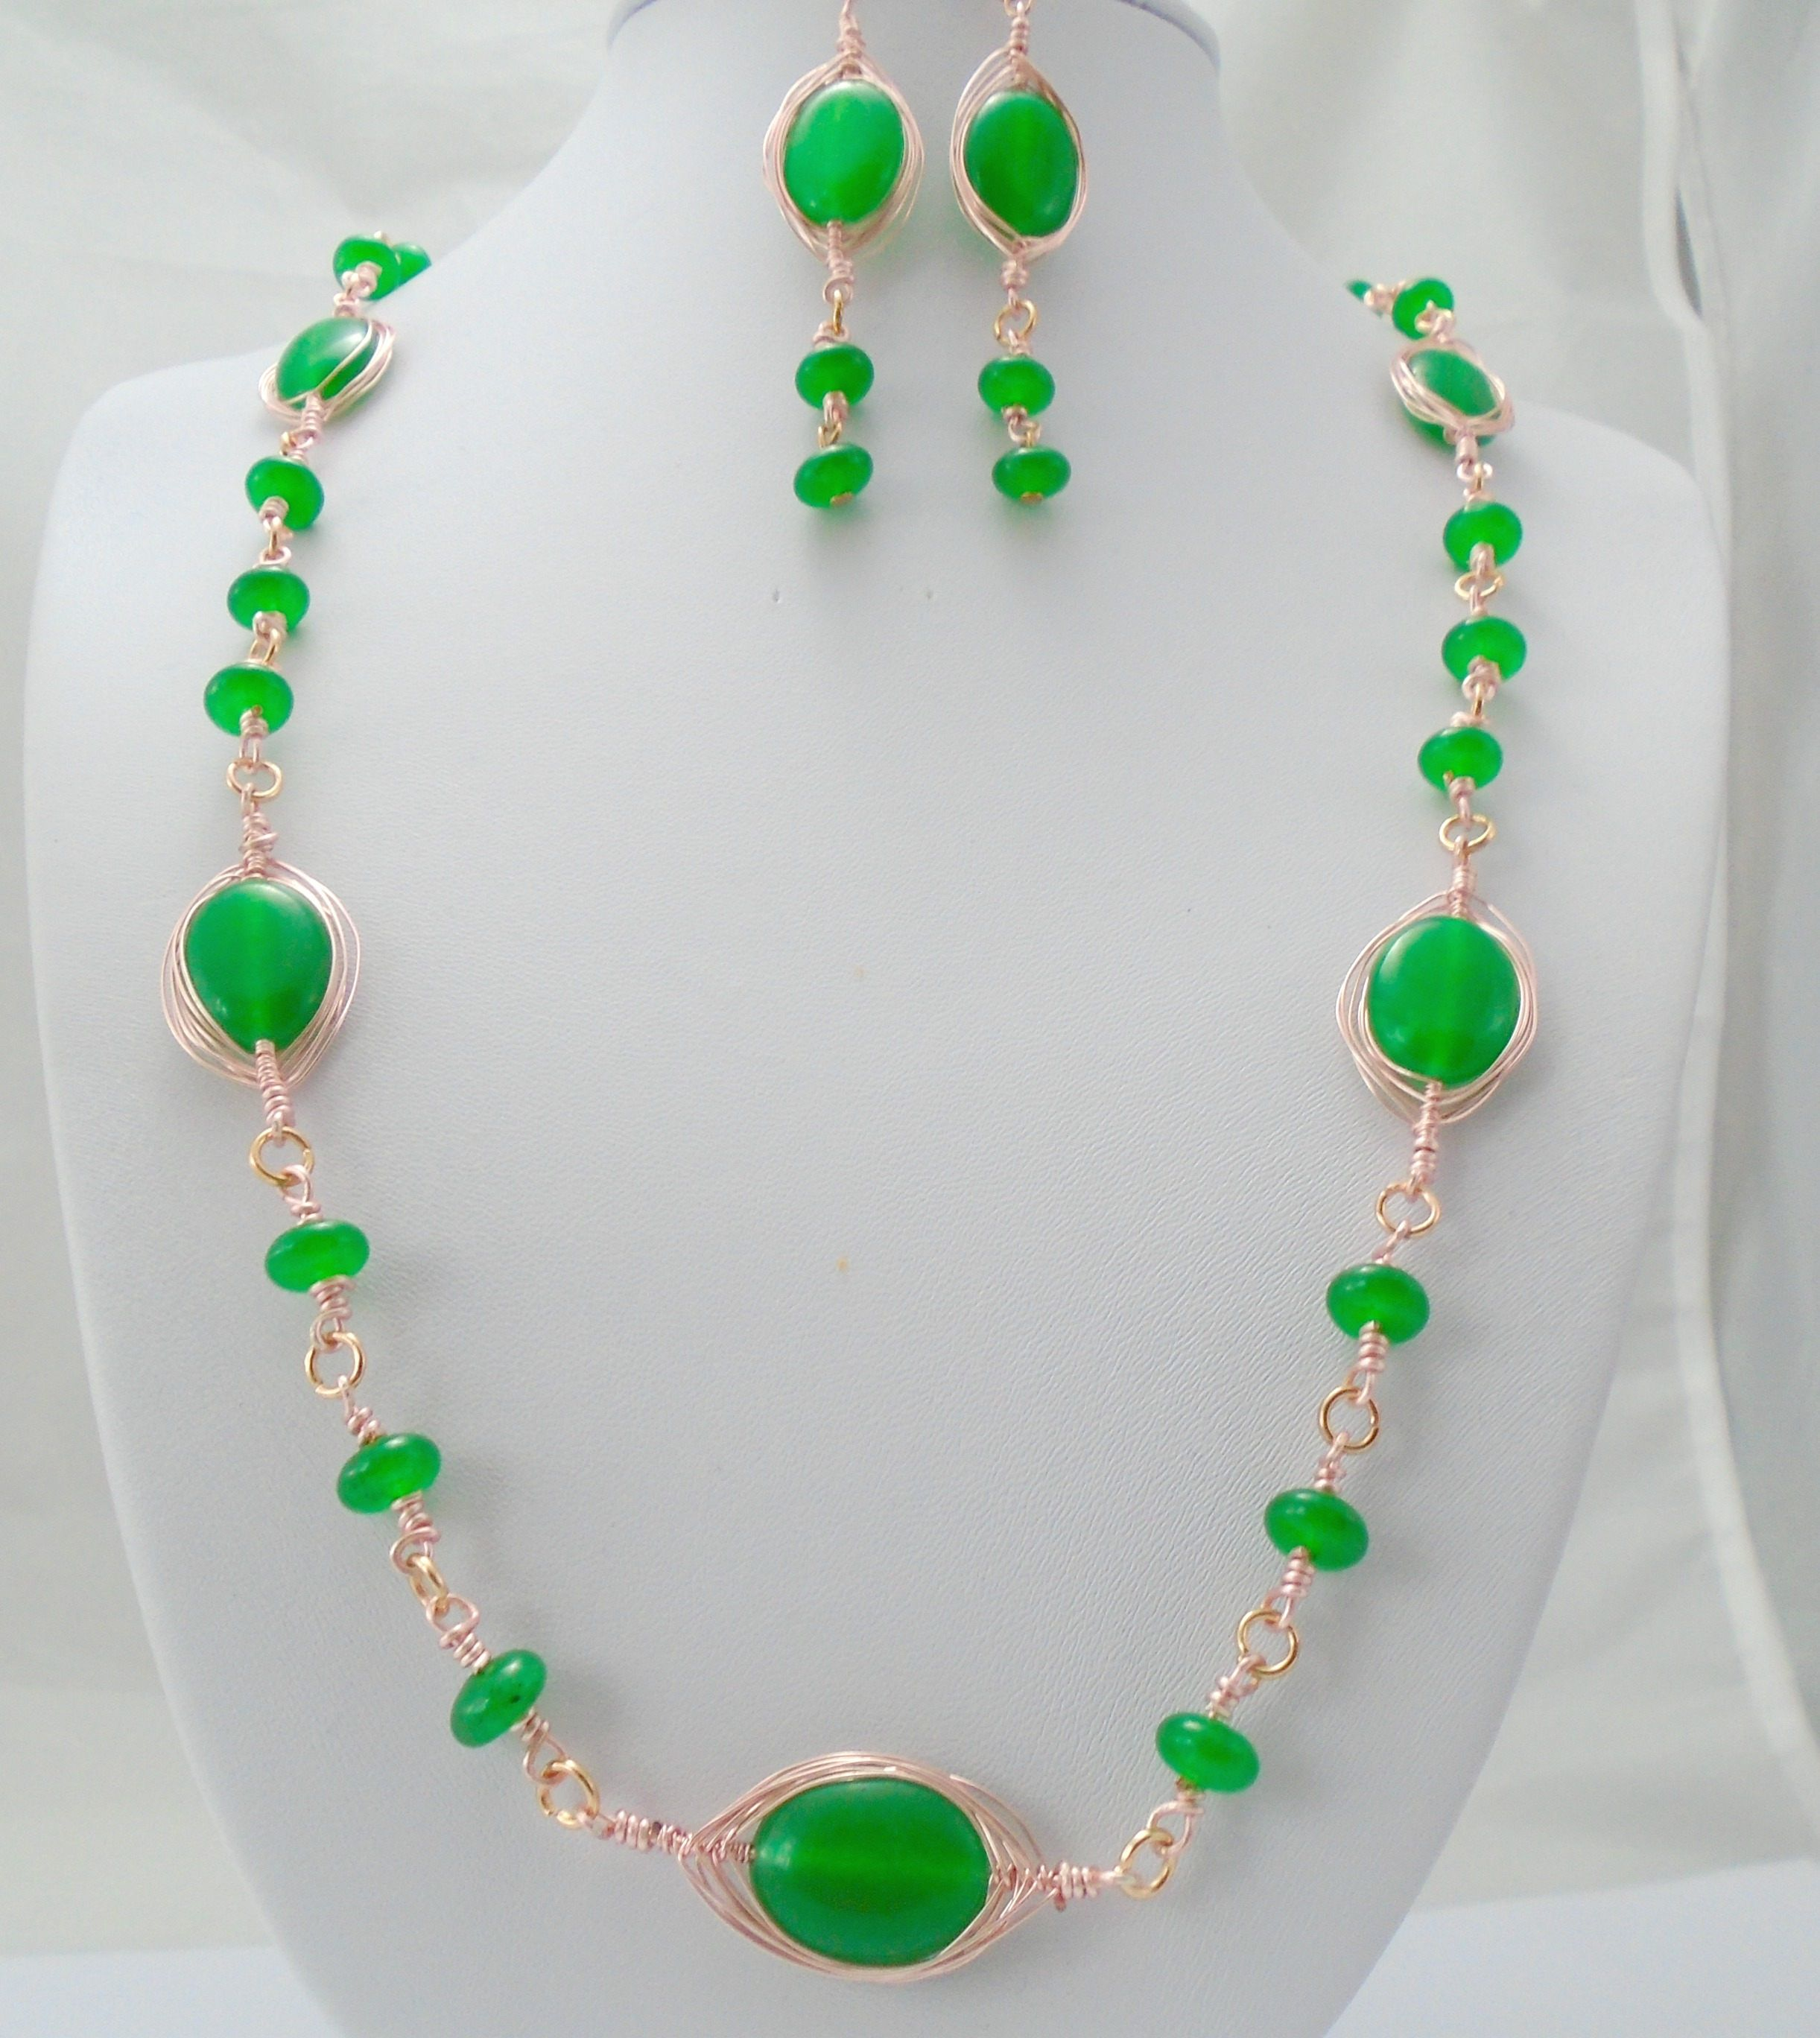 necklace michelle s pcc alisa silver onyx do good products green